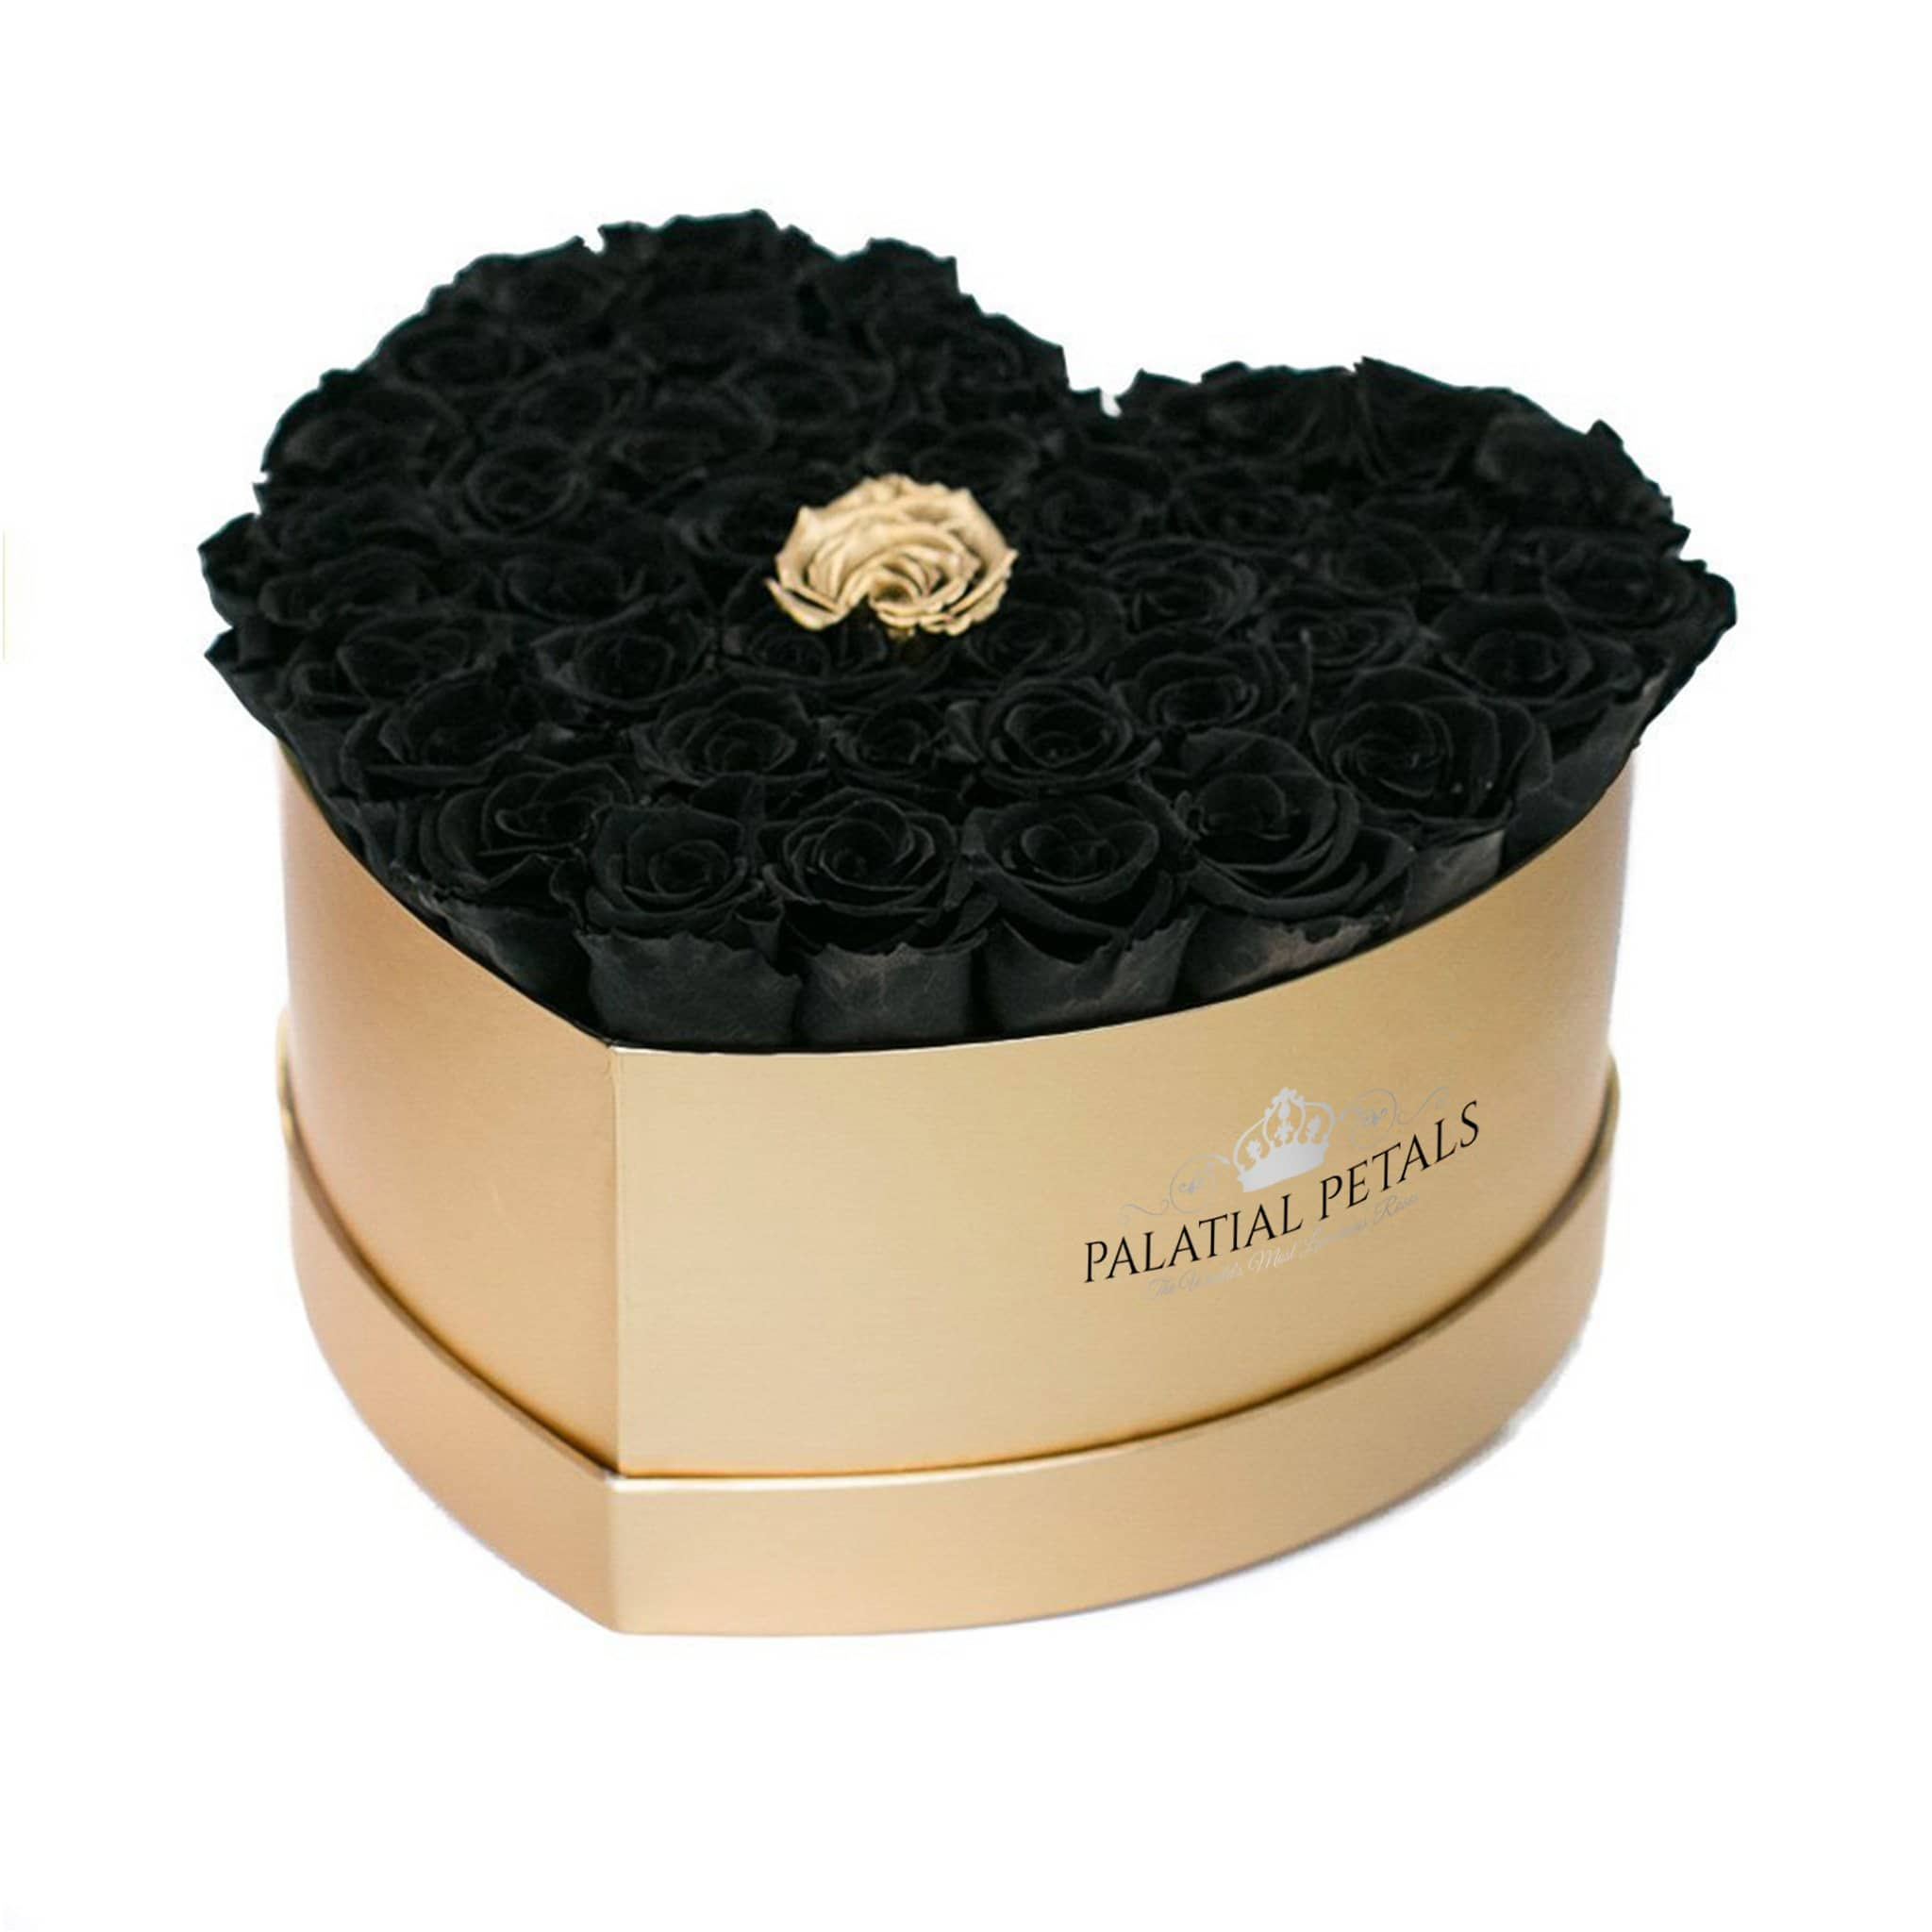 Black & 24k Gold Roses That Last A Year - Love Heart Rose Box